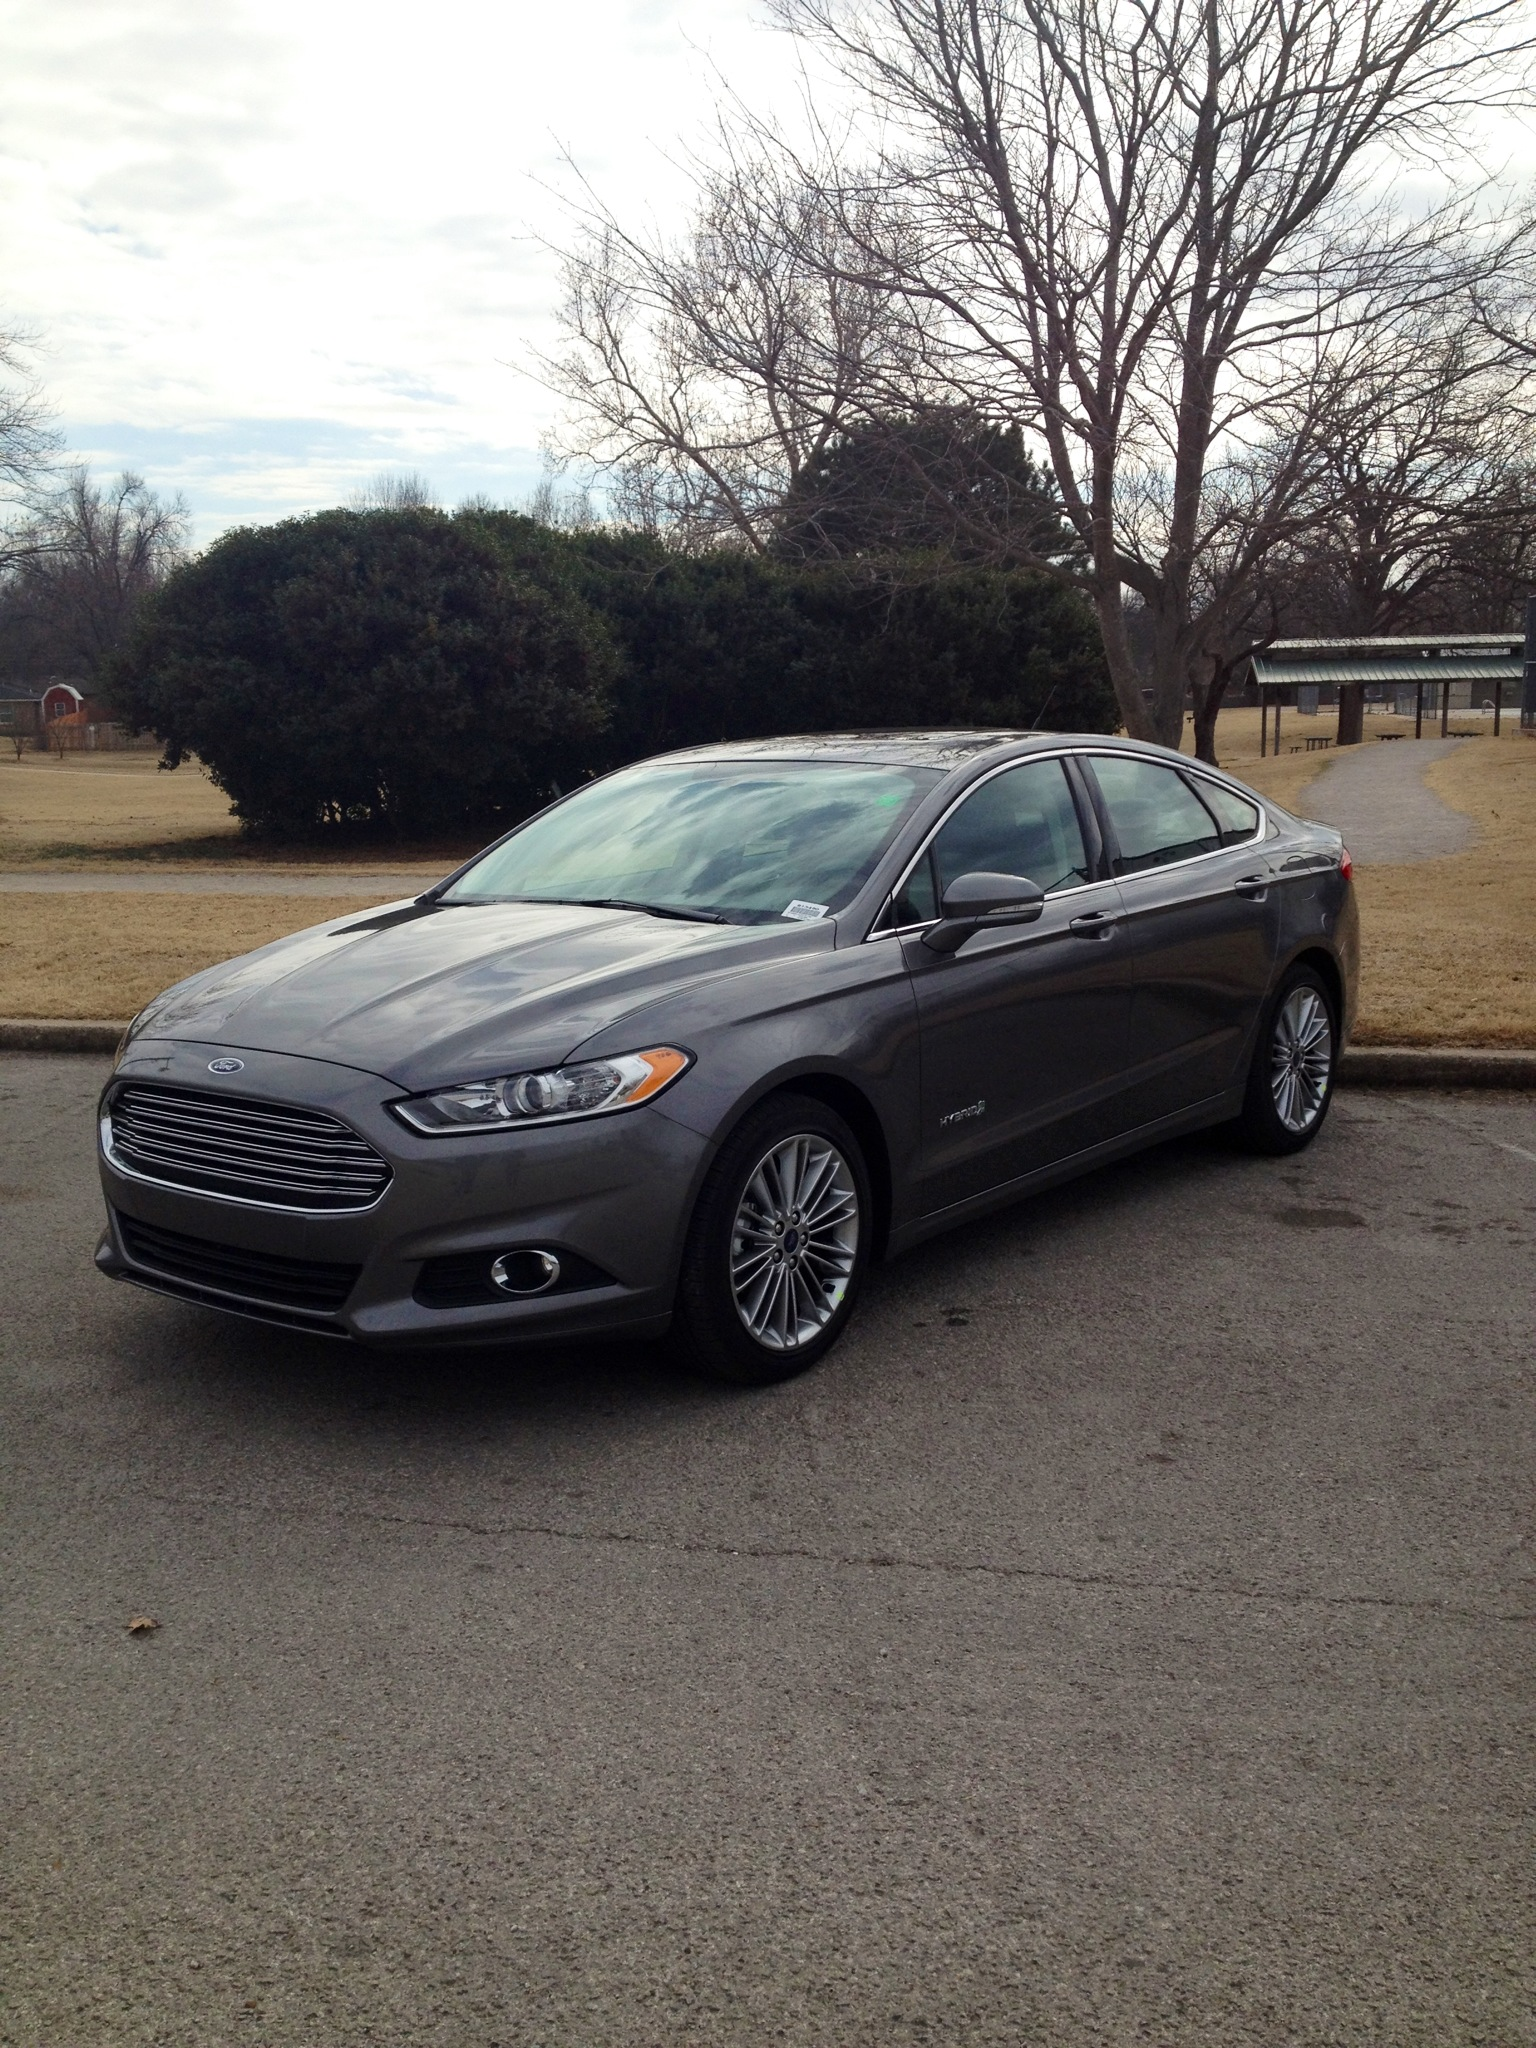 A Look At The 2013 Ford Fusion Hybrid In Grey